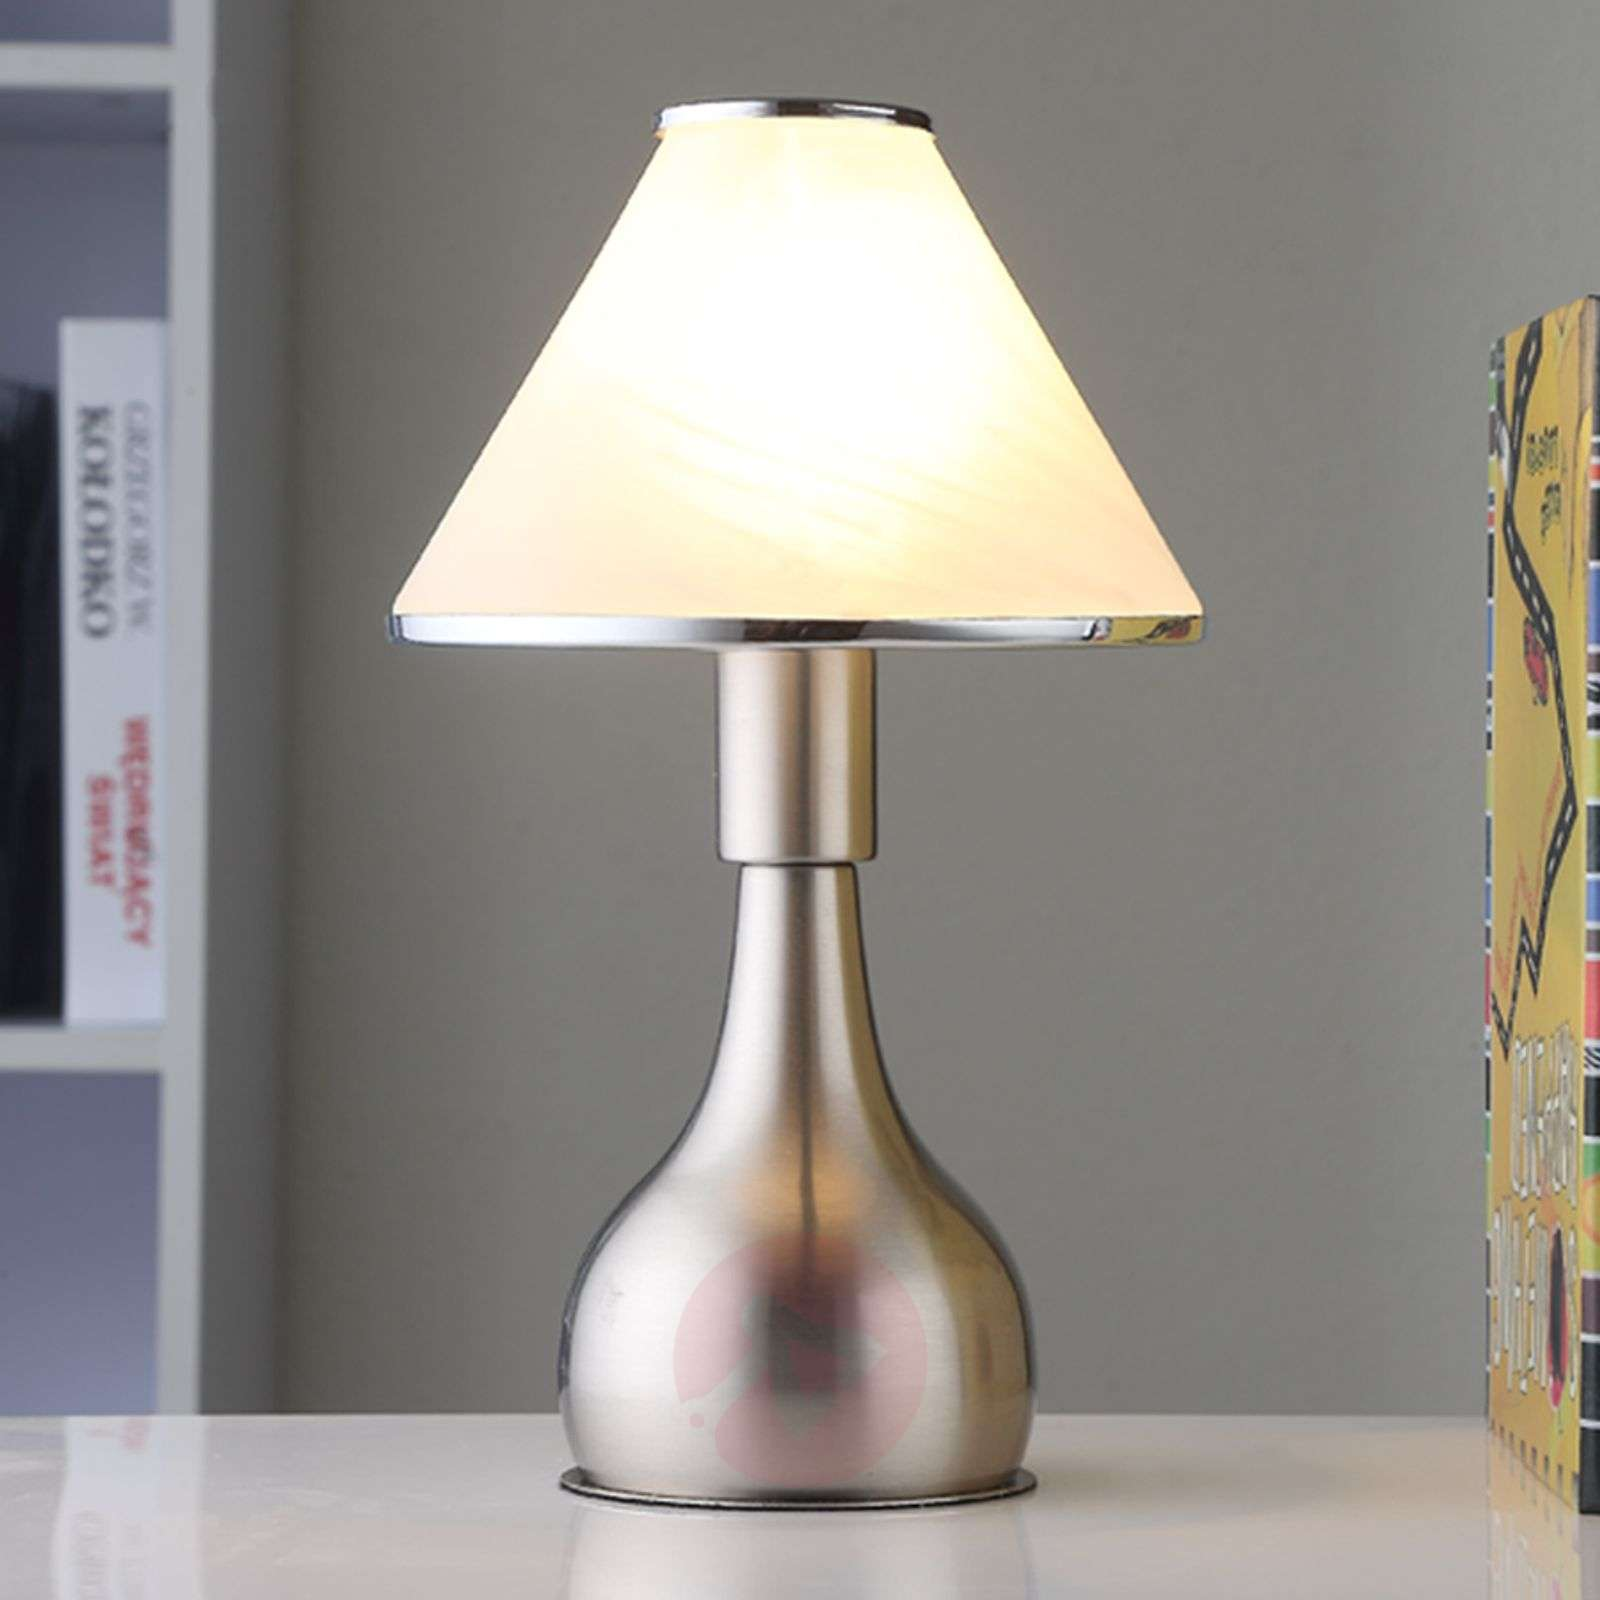 Bedside table lamp Ellen made from glass and metal-9620816-01